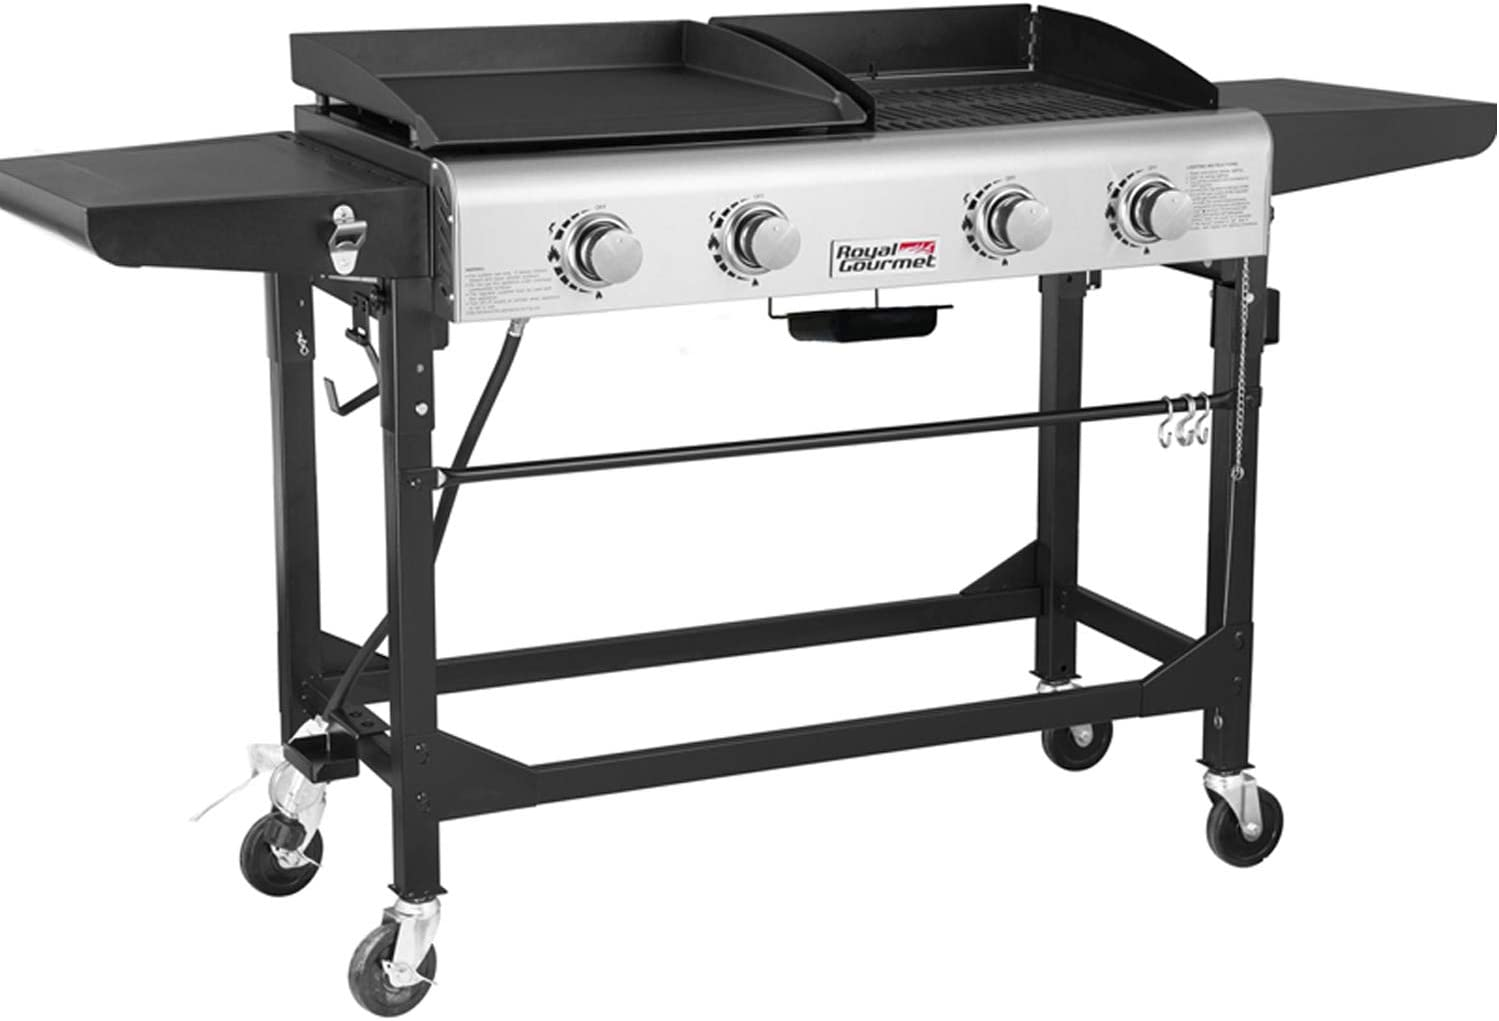 The Royal Gourmet Portable Propane Gas Grill and Griddle Combo Review